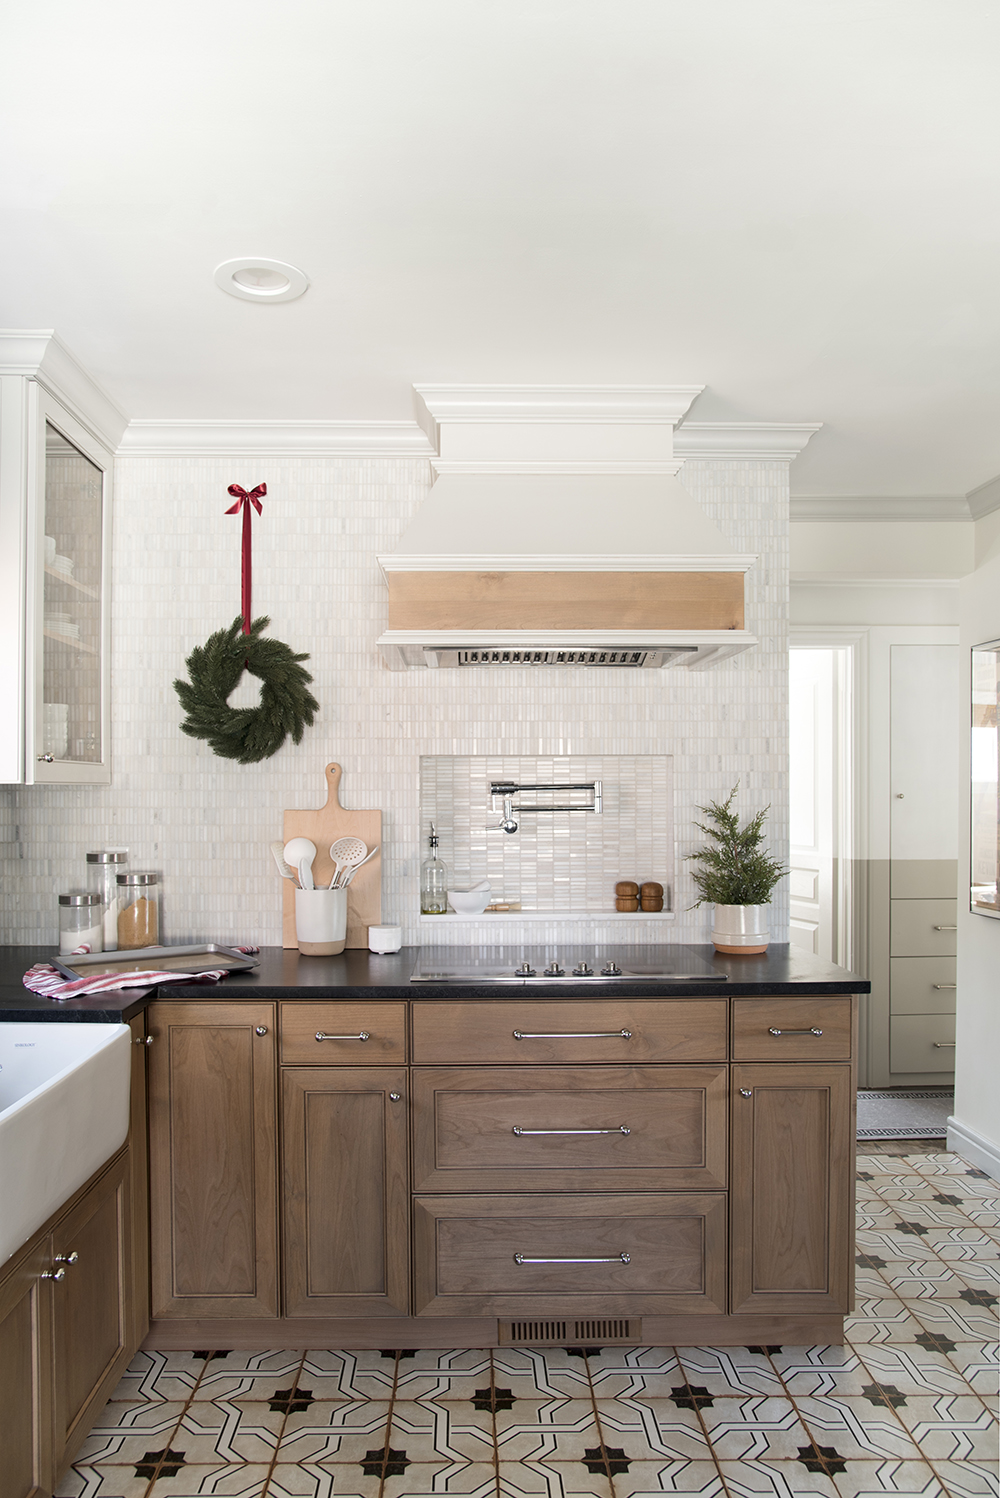 Decorating for the Holidays Without a Tree - roomfortuesday.com